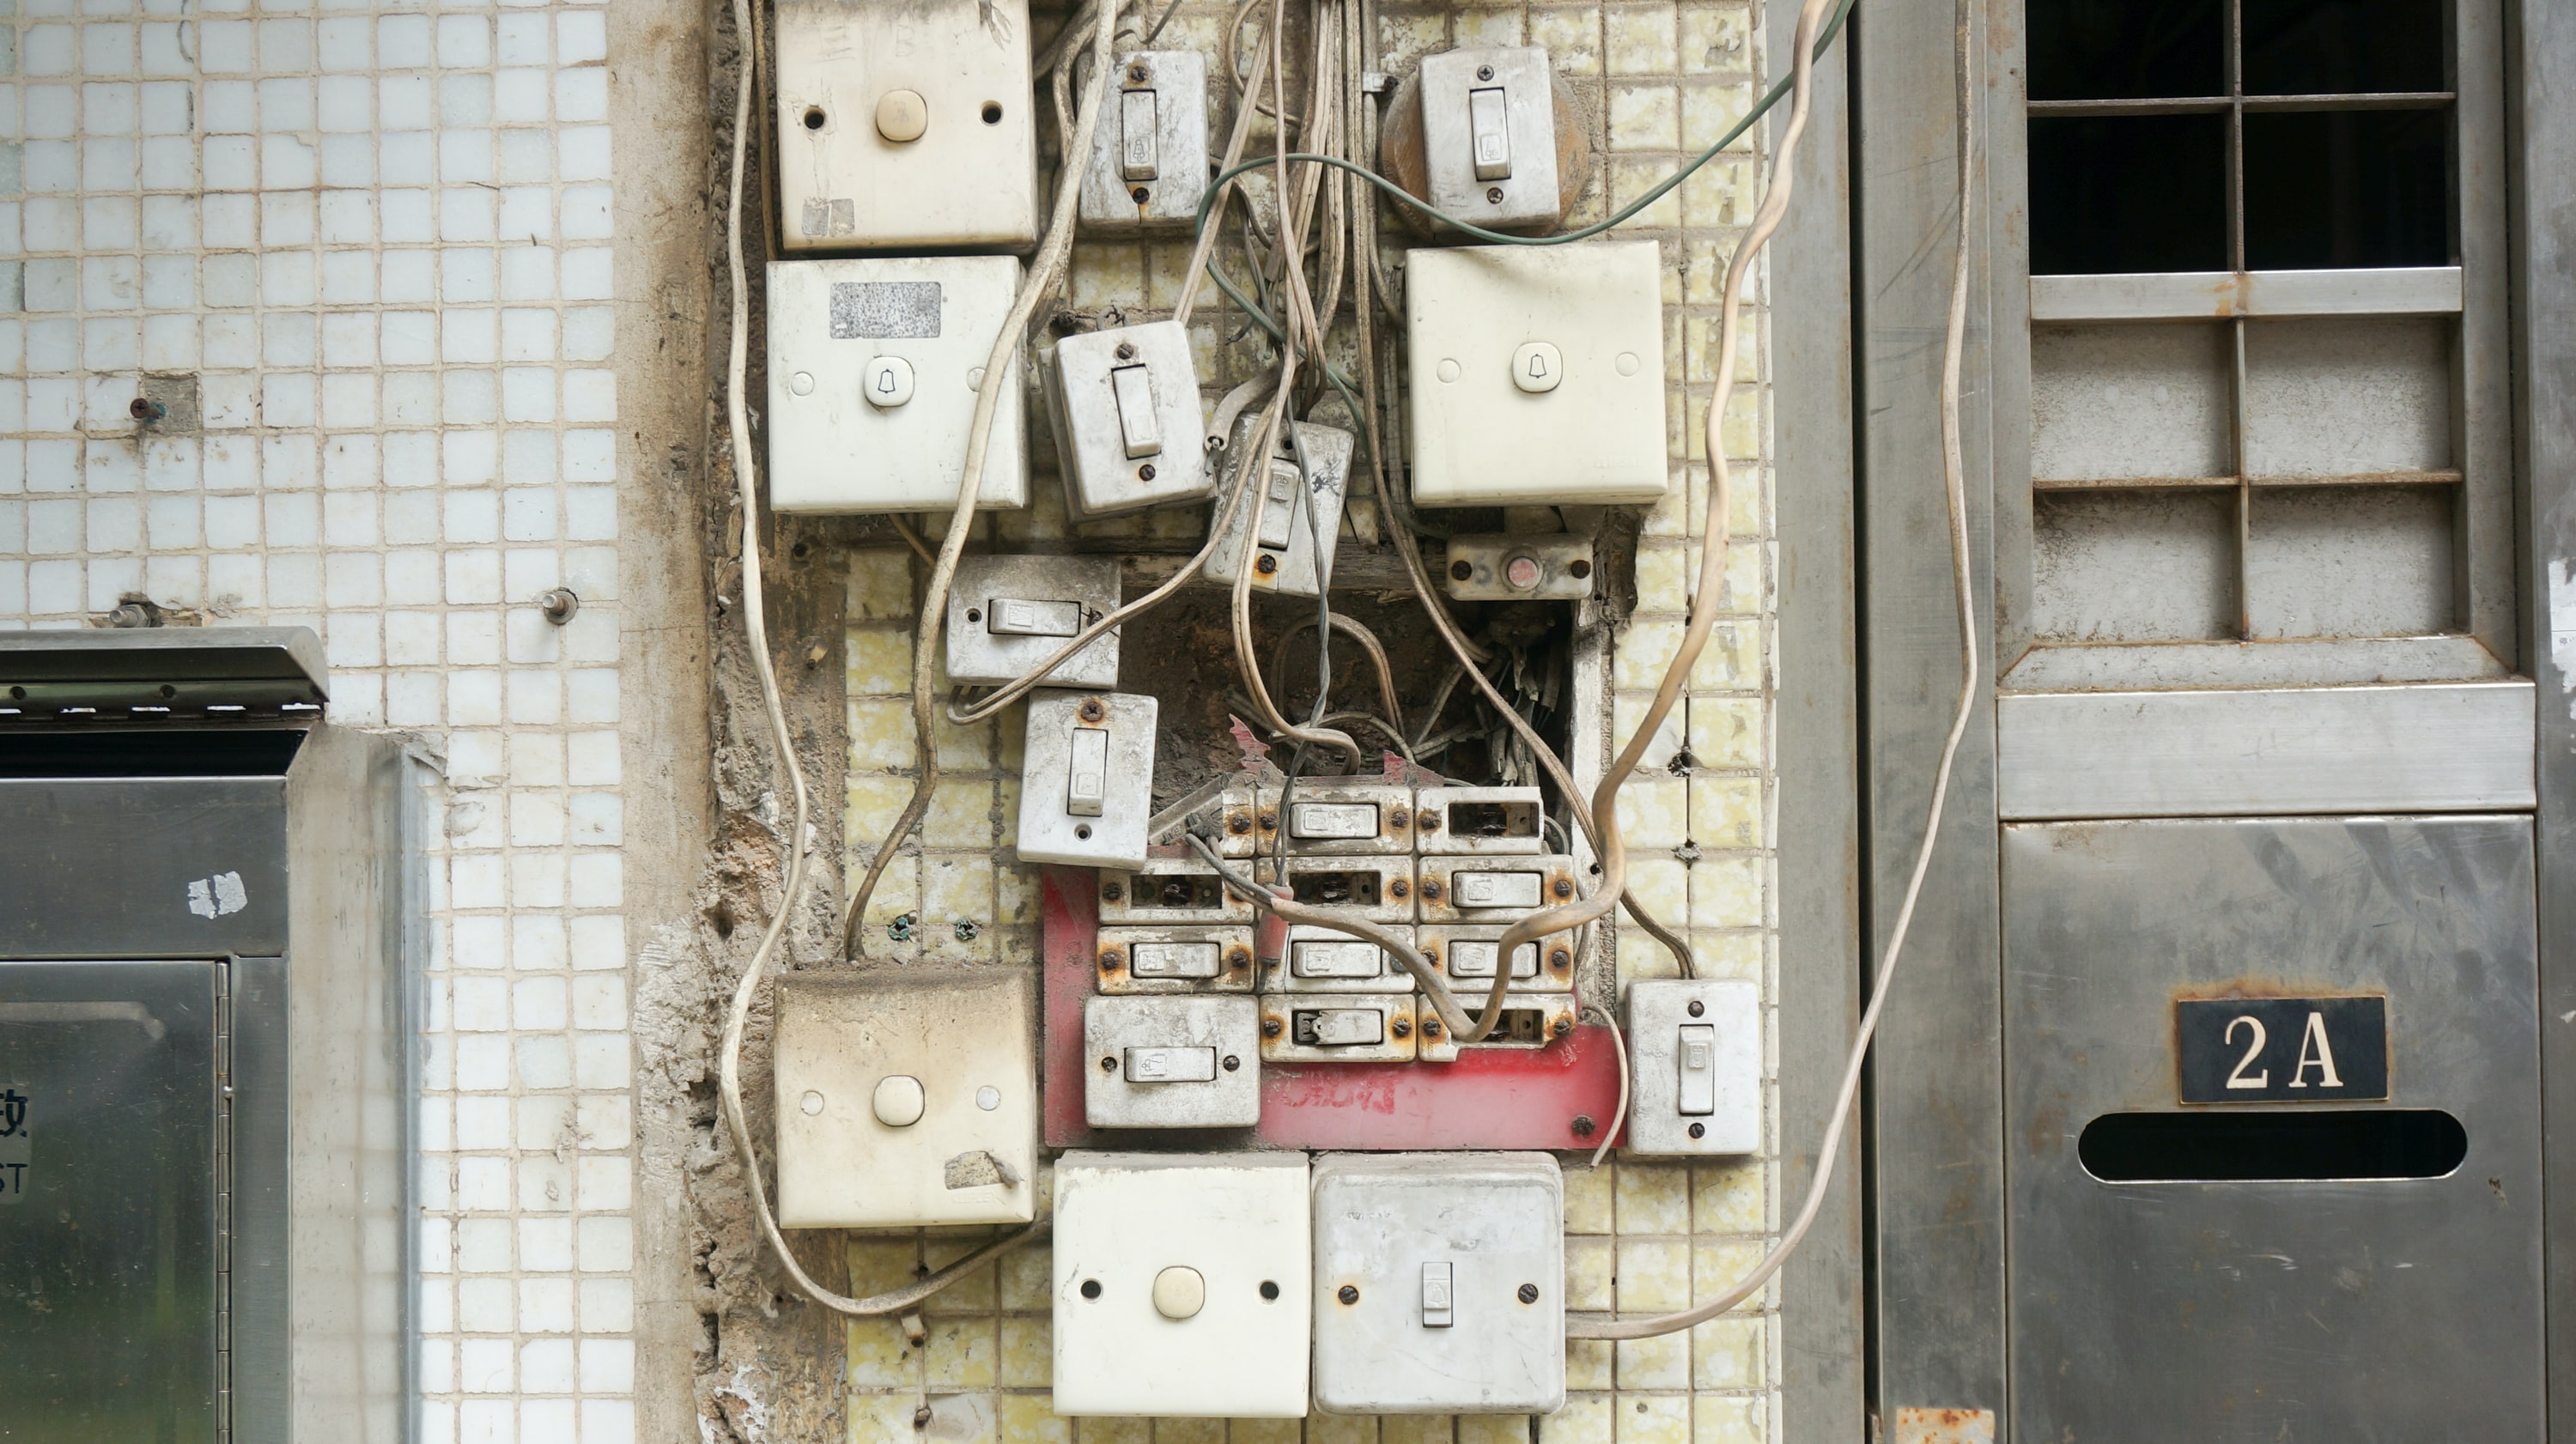 Electrical Wiring Apartment Wall Trusted Diagrams Outlets Buzzer Photo By Yung Chang Yungnoma On Unsplash Outlet